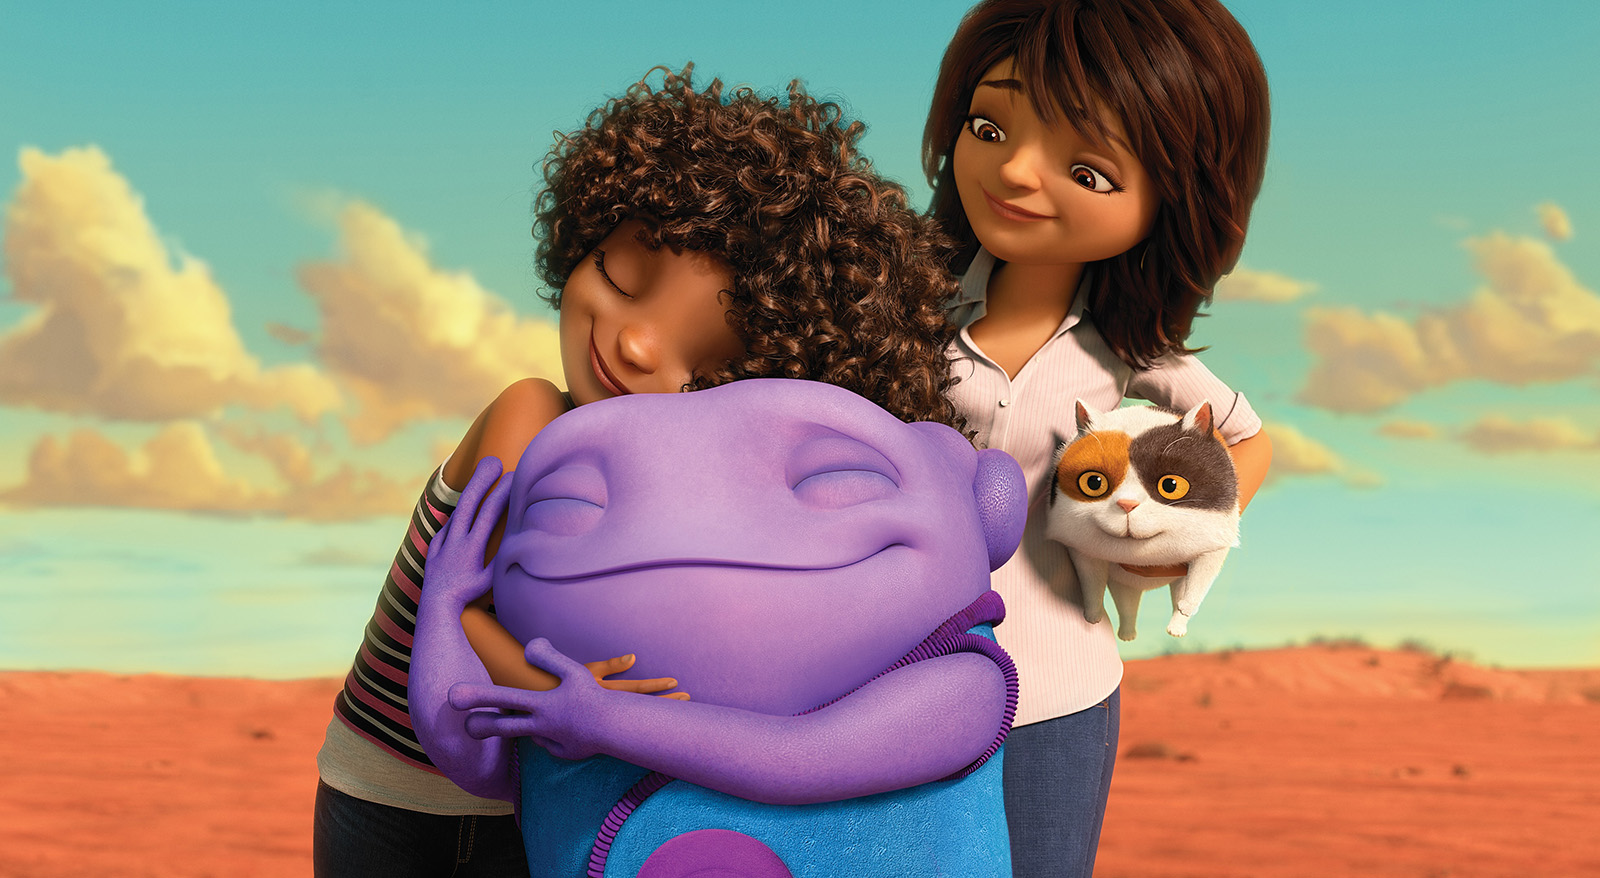 EN ROUTE - Image du film 6 HOME OH Dreamworks - Go with the Blog